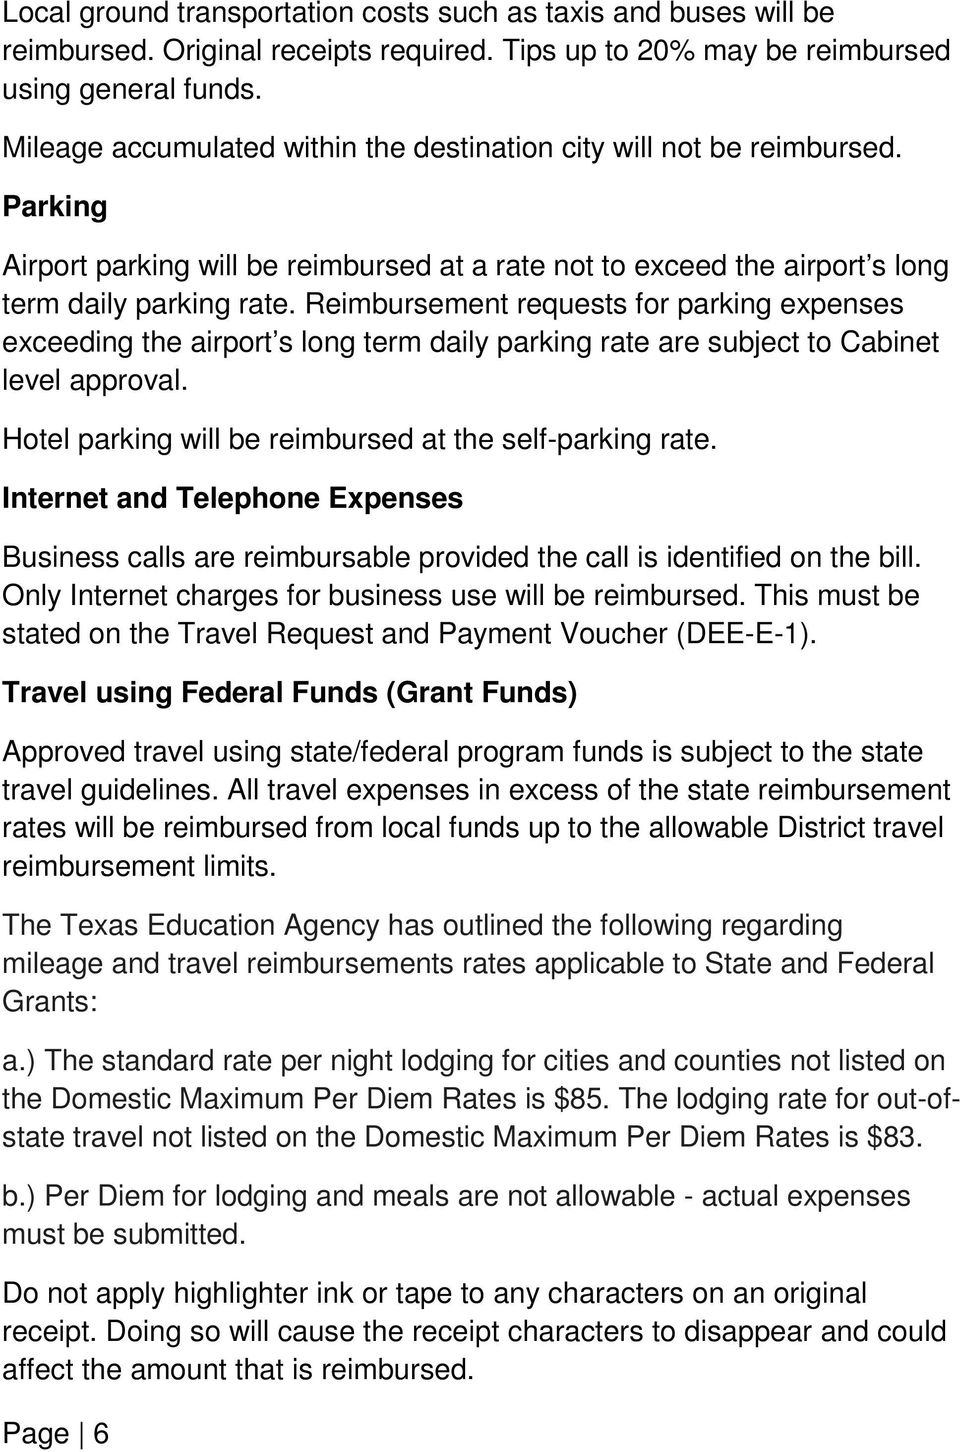 Reimbursement requests for parking expenses exceeding the airport s long term daily parking rate are subject to Cabinet level approval. Hotel parking will be reimbursed at the self-parking rate.